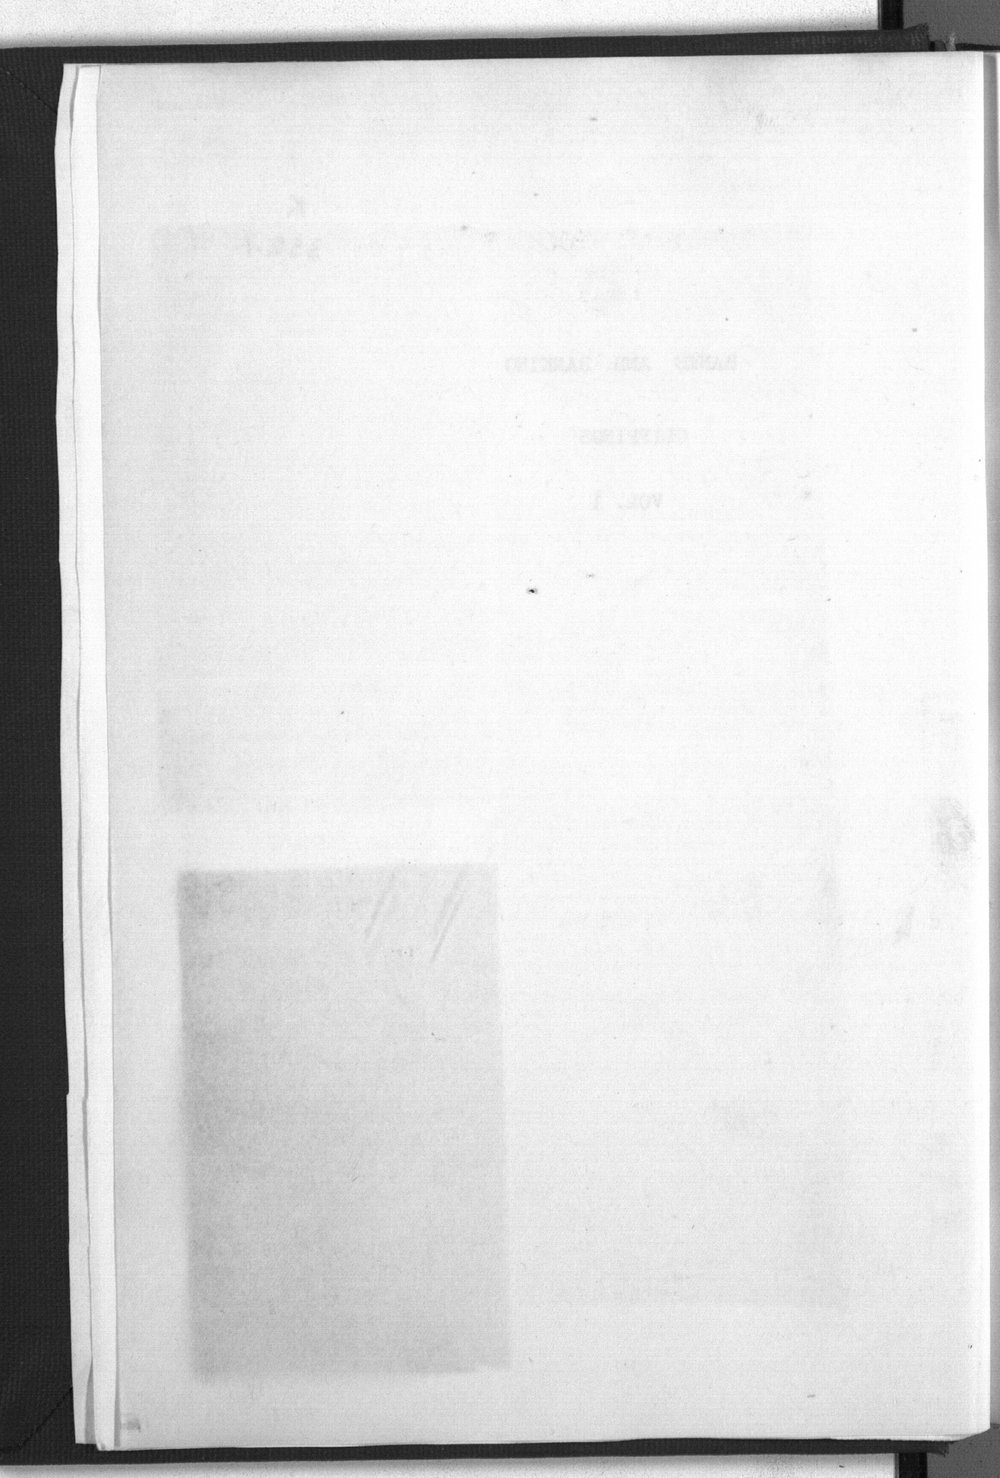 Banks and banking newspaper articles - blank page